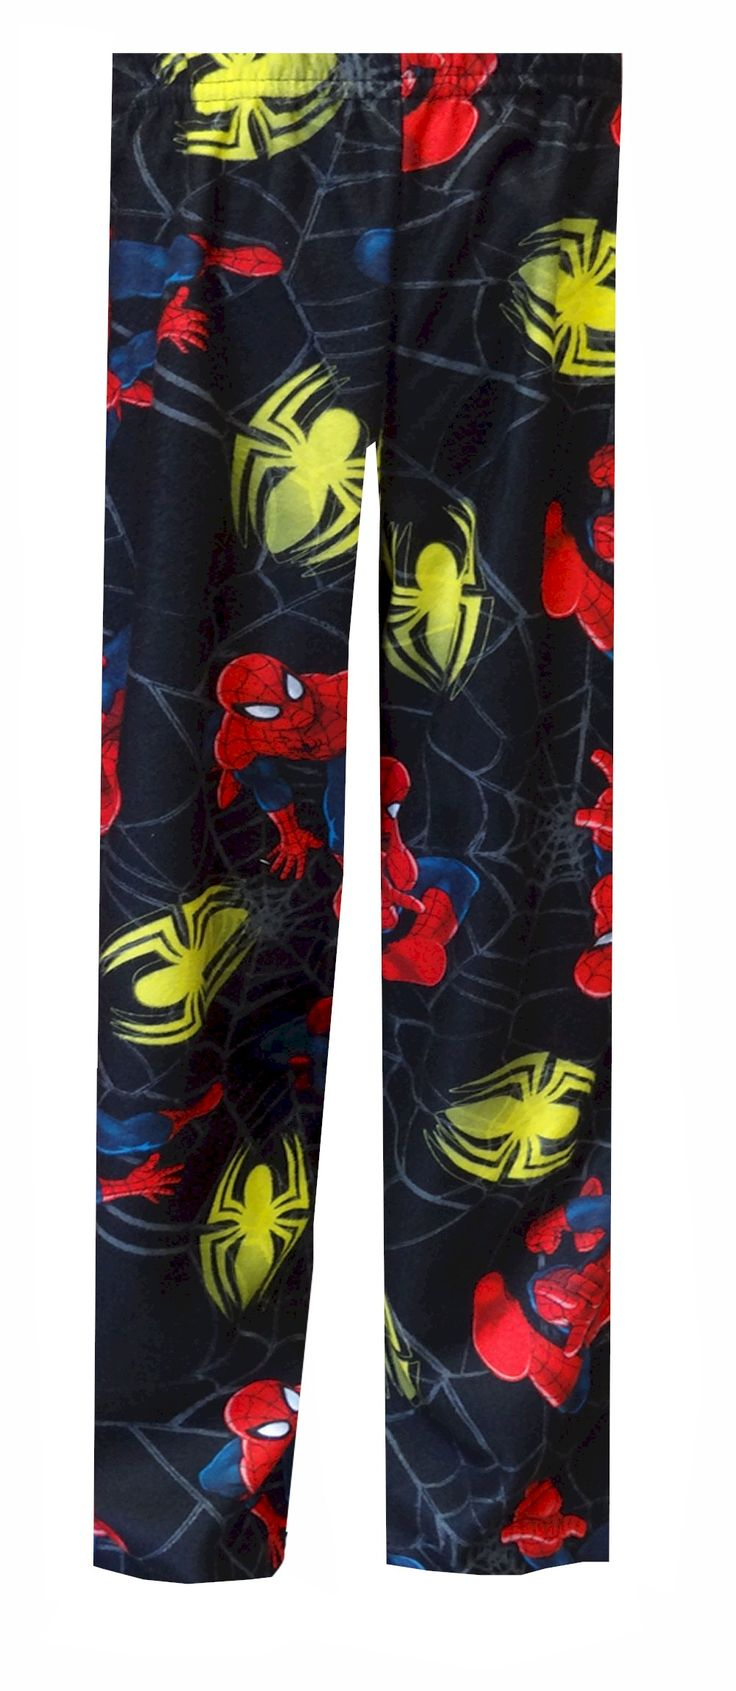 Marvel Ultimate Spiderman Black Pajama Pants Just what he needs on chilly nights! These flame resistant 100% polyester pajama pants for boys feature an all-over print with Spiderman and his spider symbol. Perfect for sleeping or lounging for a cartoon marathon! They are brushed poly, so they are warm and soft. Elastic waist, pull on styling.